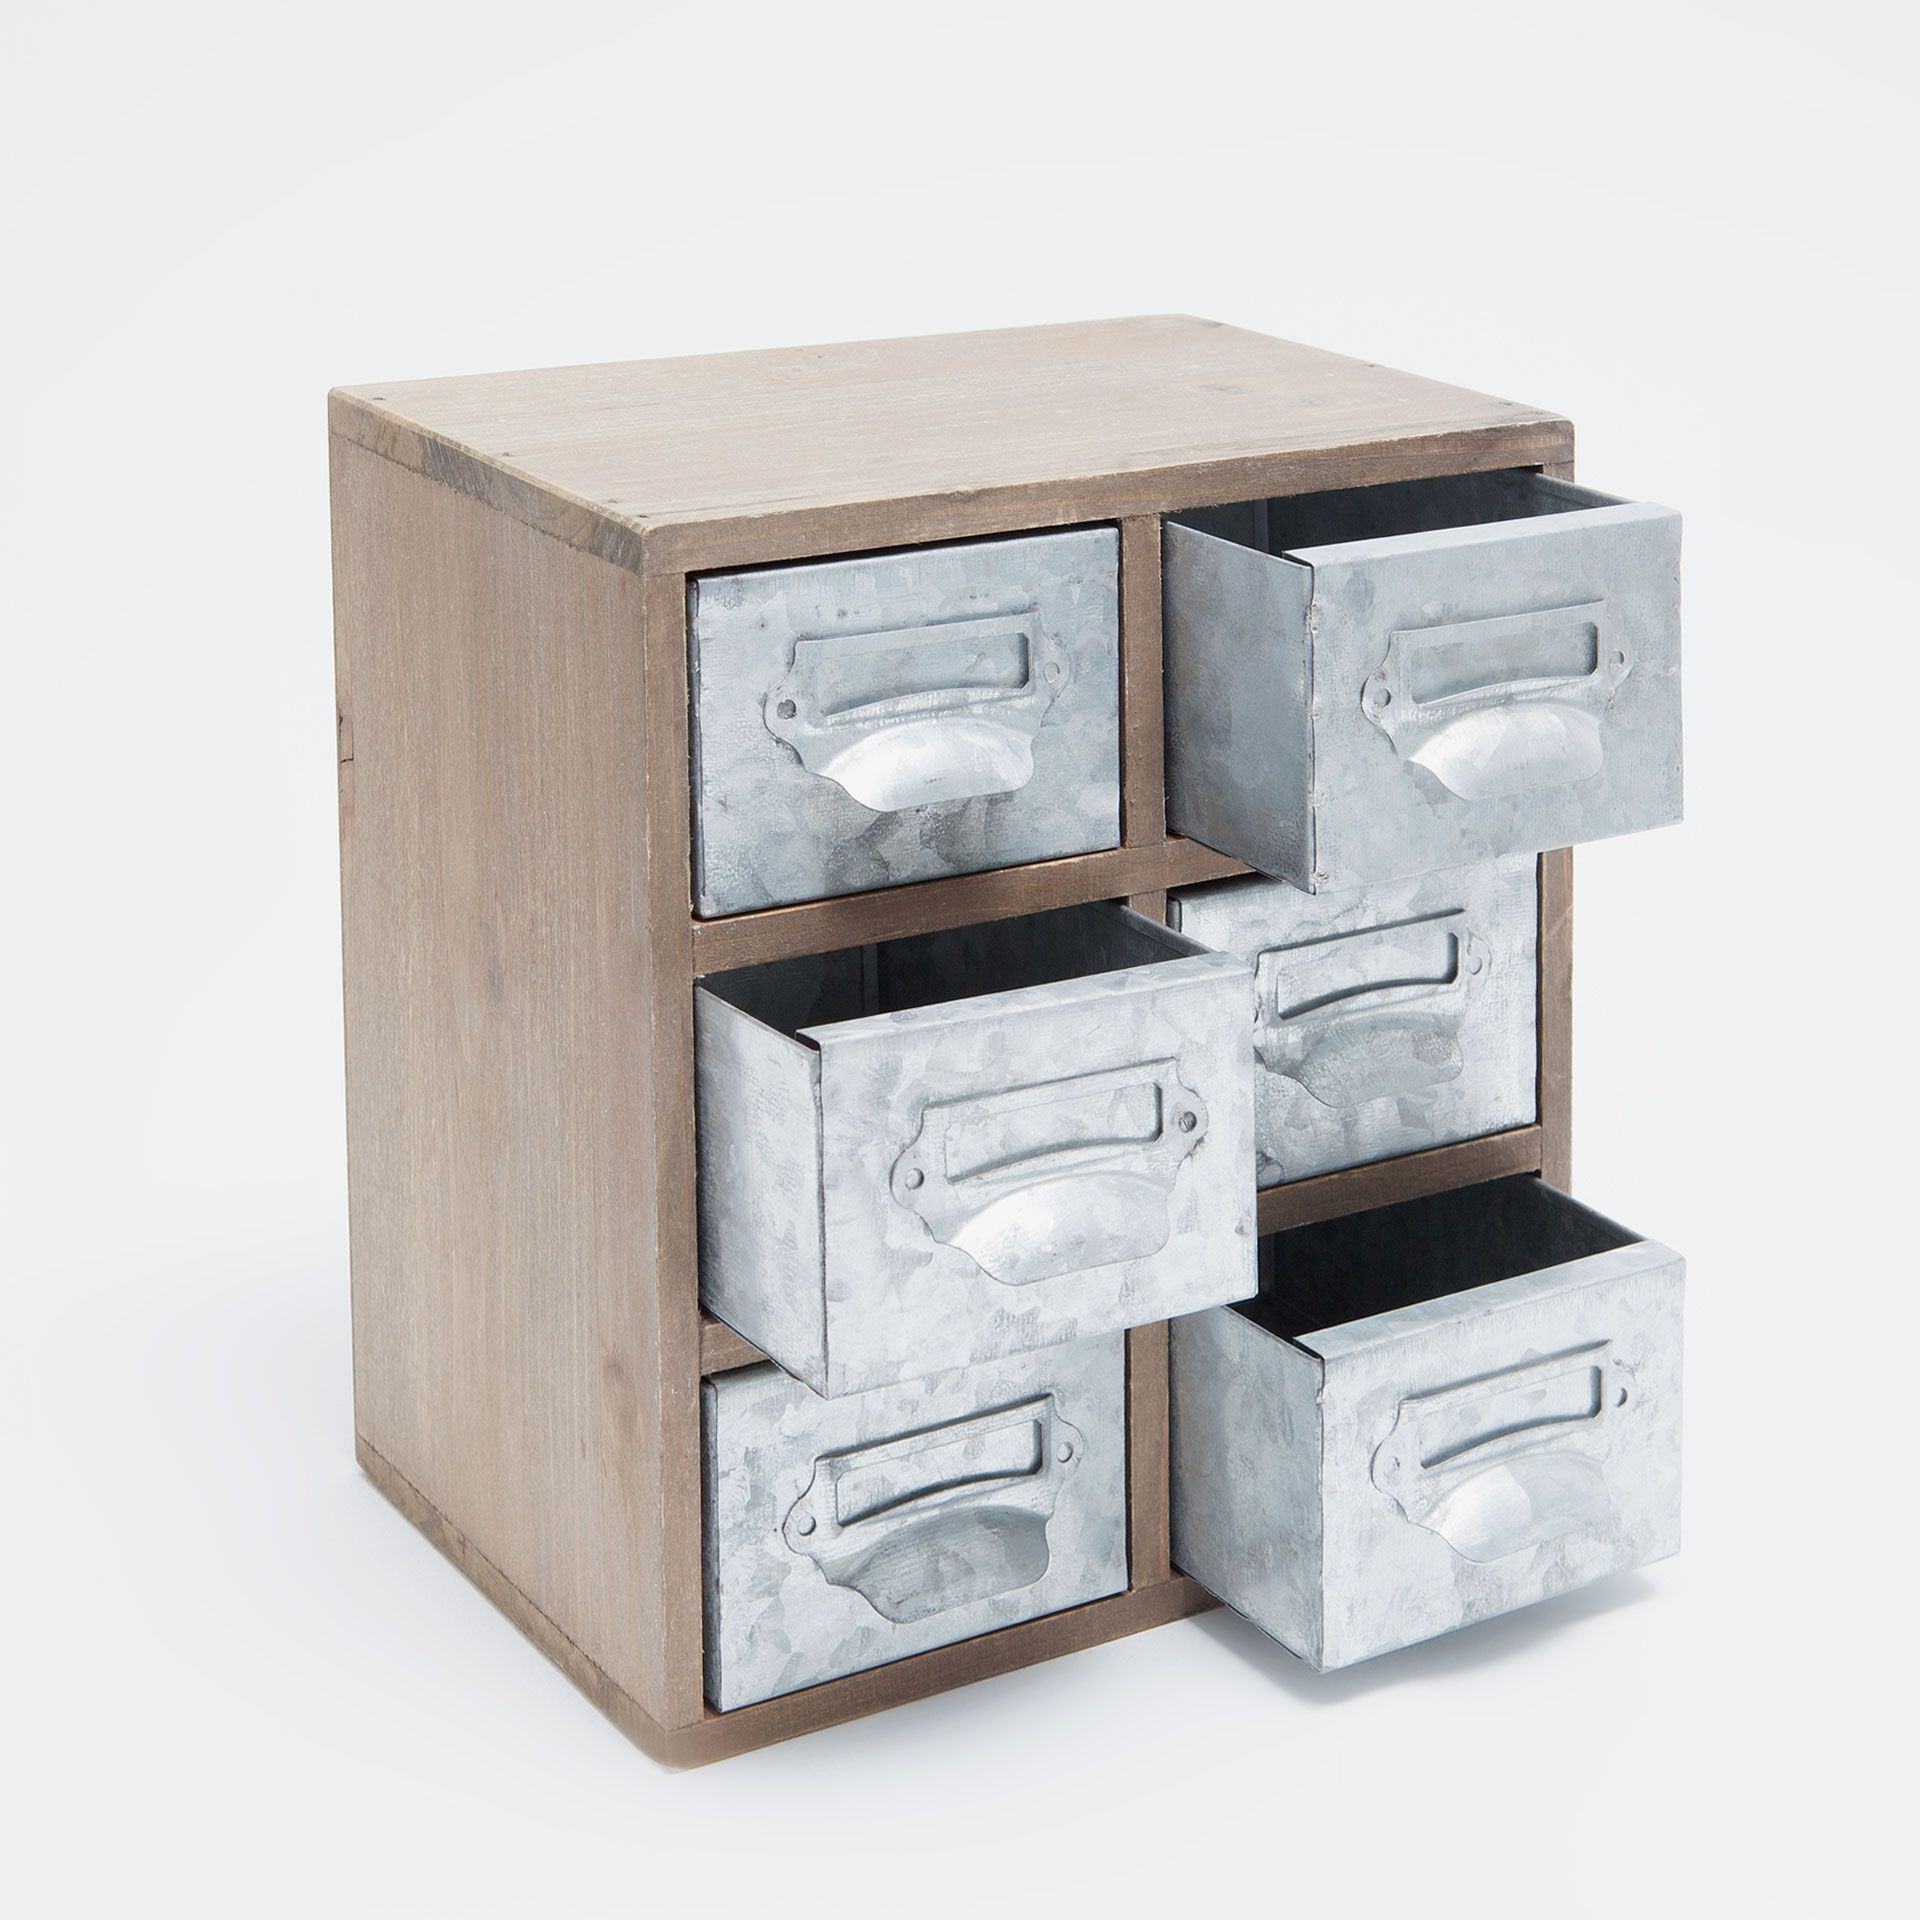 Image 2 of the product Wooden box with galvanised metal drawers ...